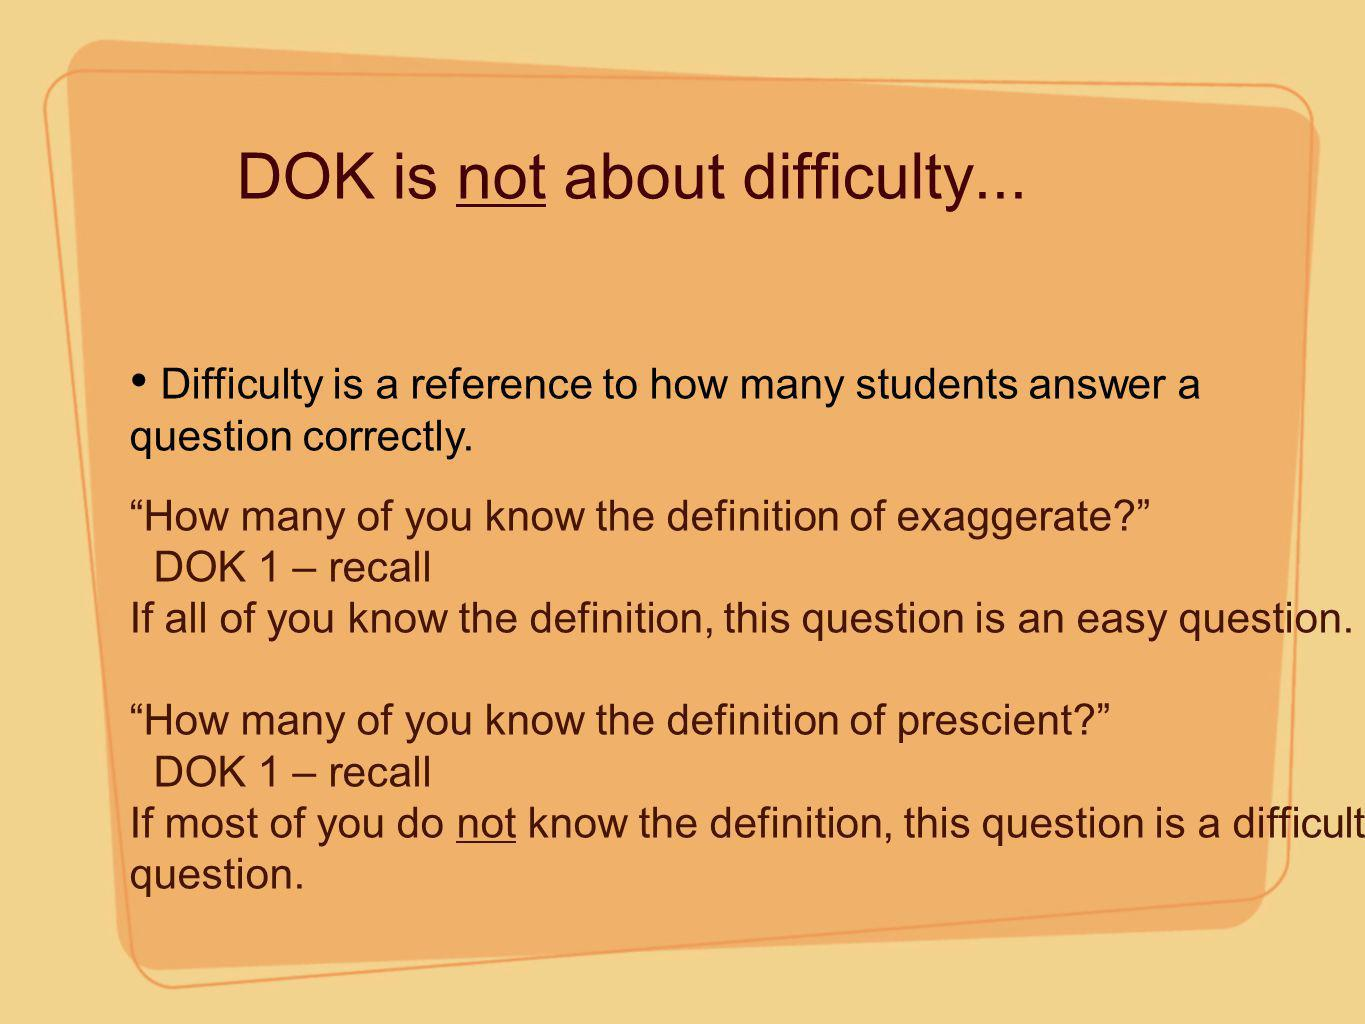 DOK is not about difficulty...